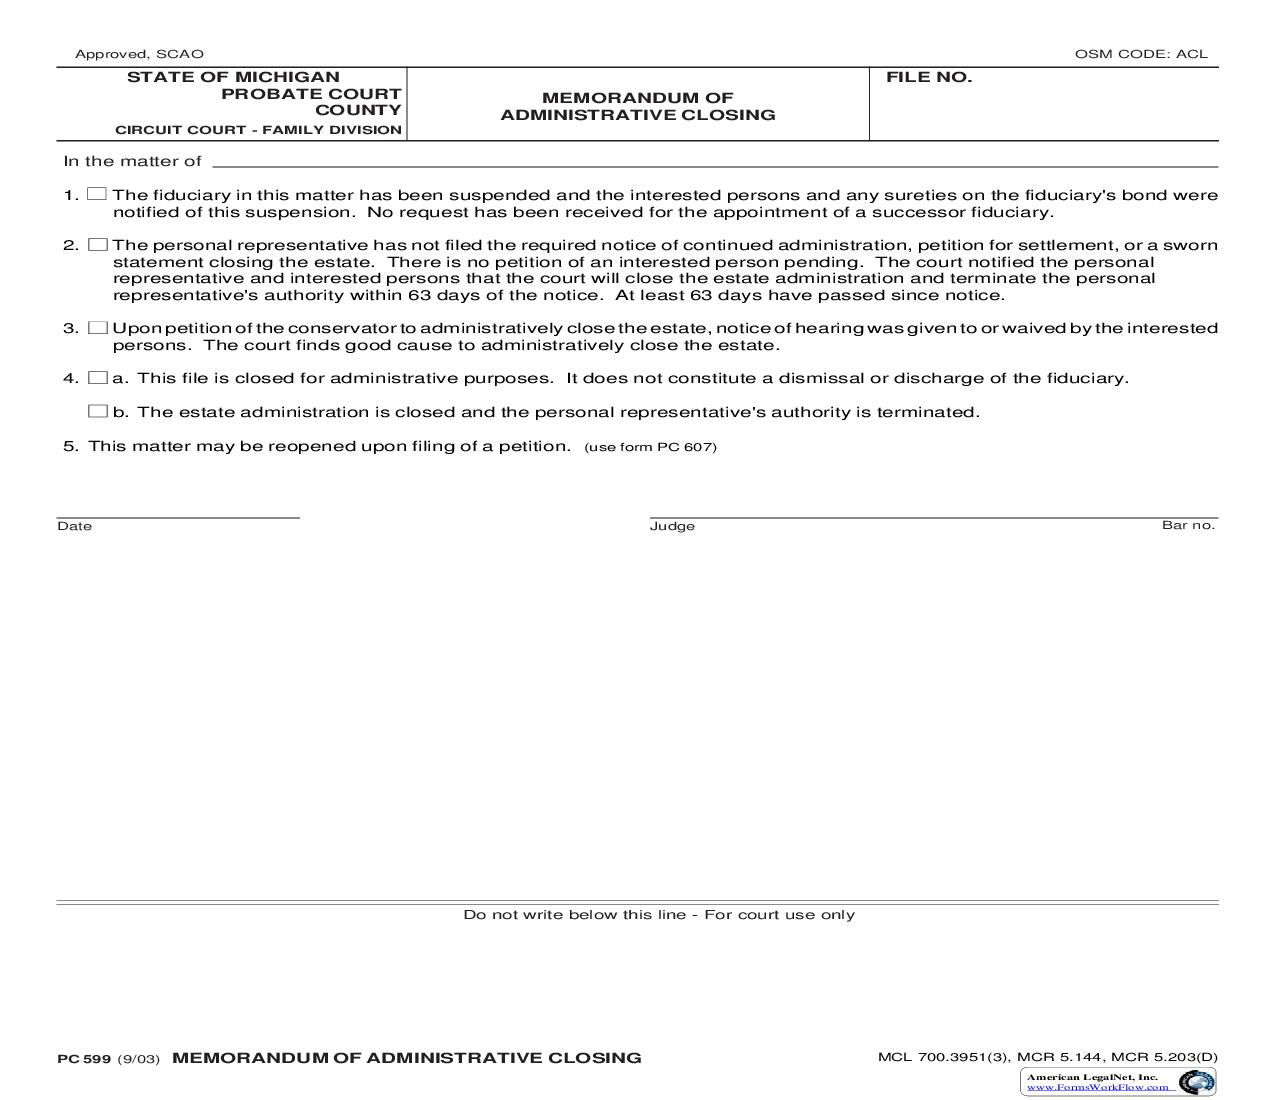 Memorandum Of Administrative Closing {PC 599} | Pdf Fpdf Doc Docx | Michigan